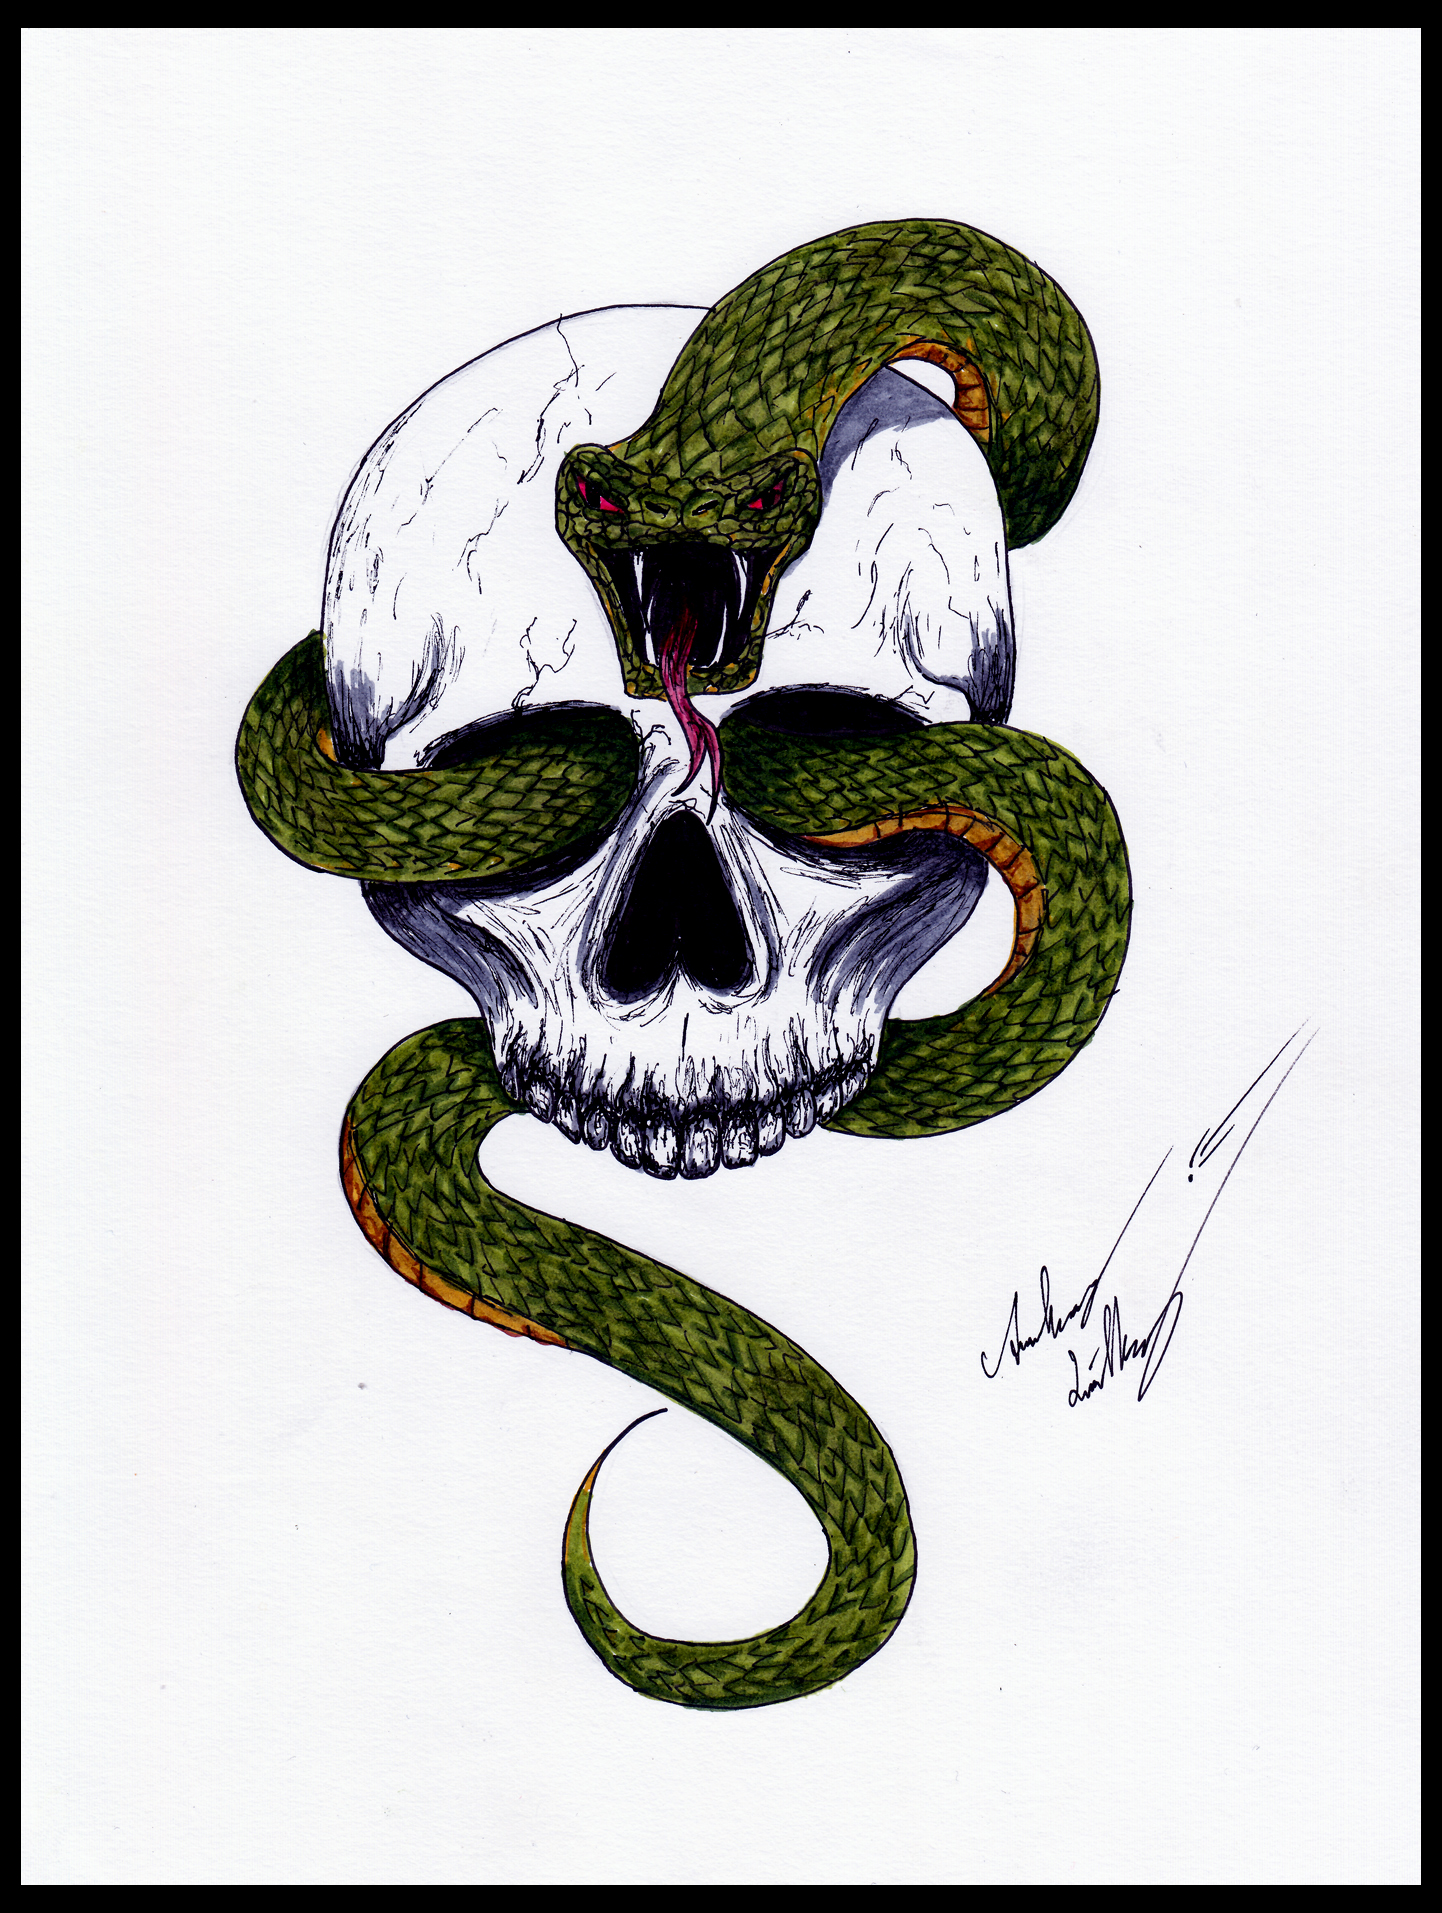 Snake skull by Blackidus on DeviantArt